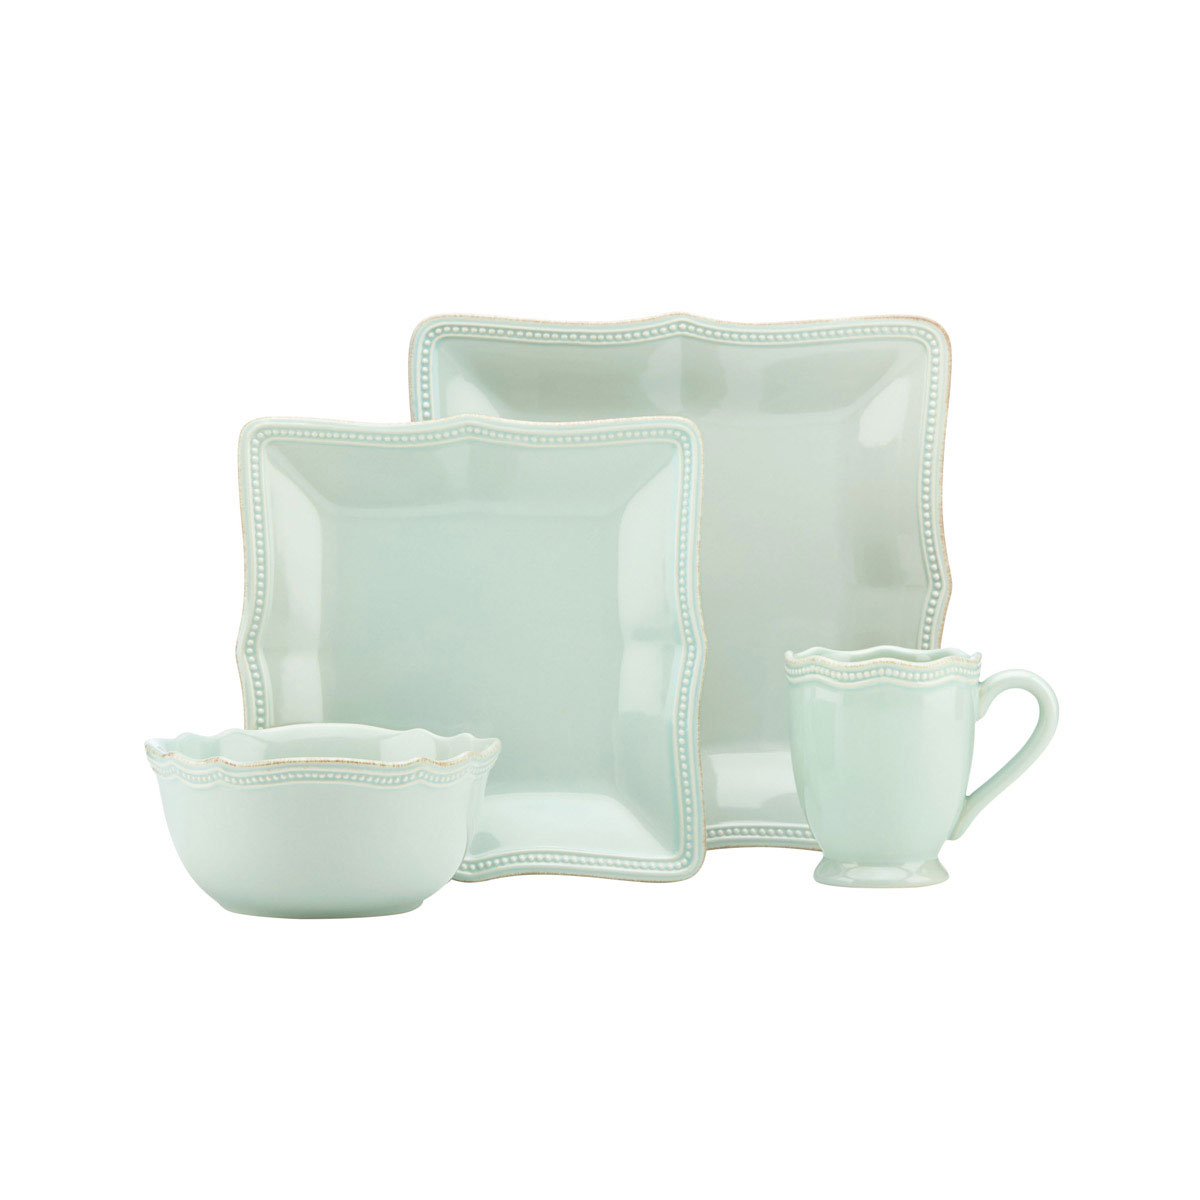 Lenox French Perle Bead Ice Blue Square, 4 Piece Place Setting